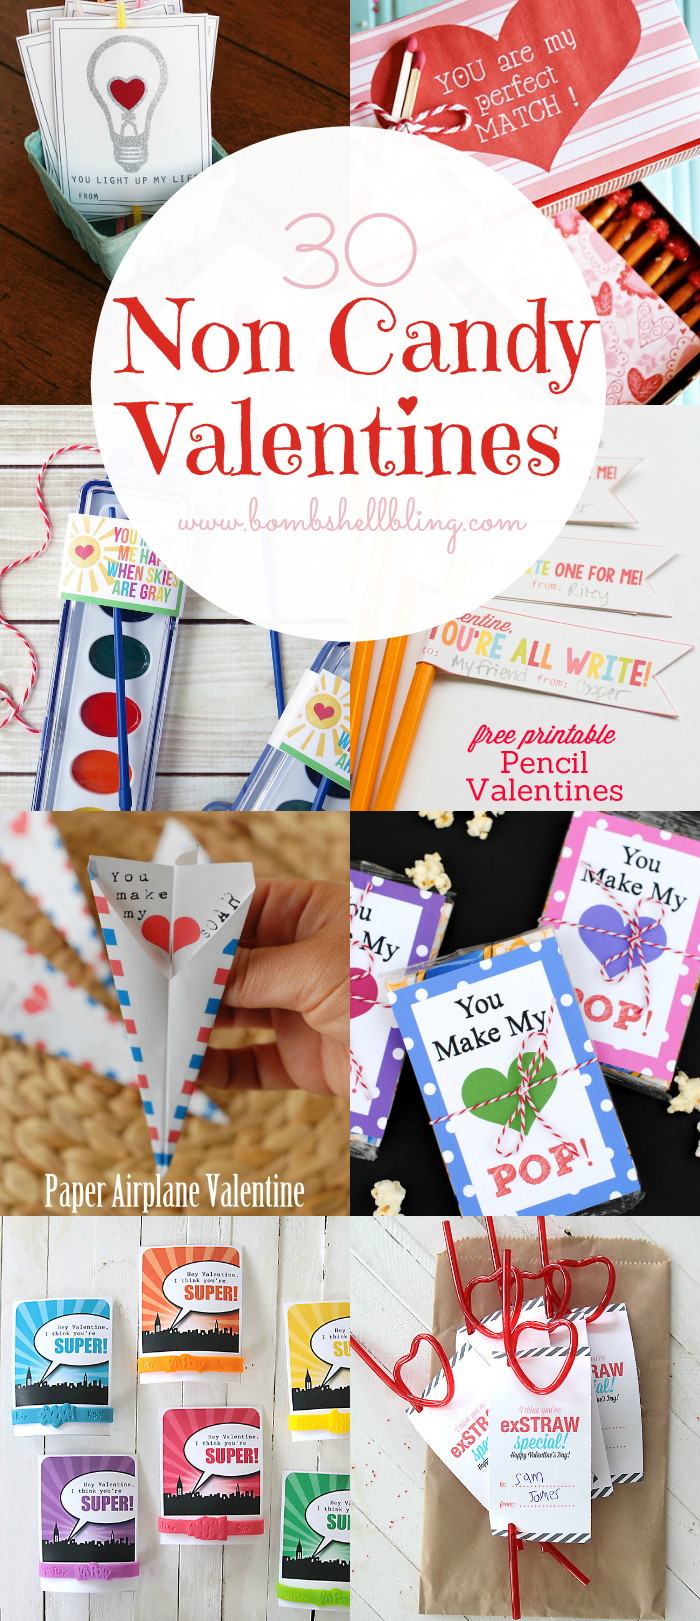 Valentine Gift Ideas For School  Non Candy Valentine Ideas & Printables Over 30 to Choose From